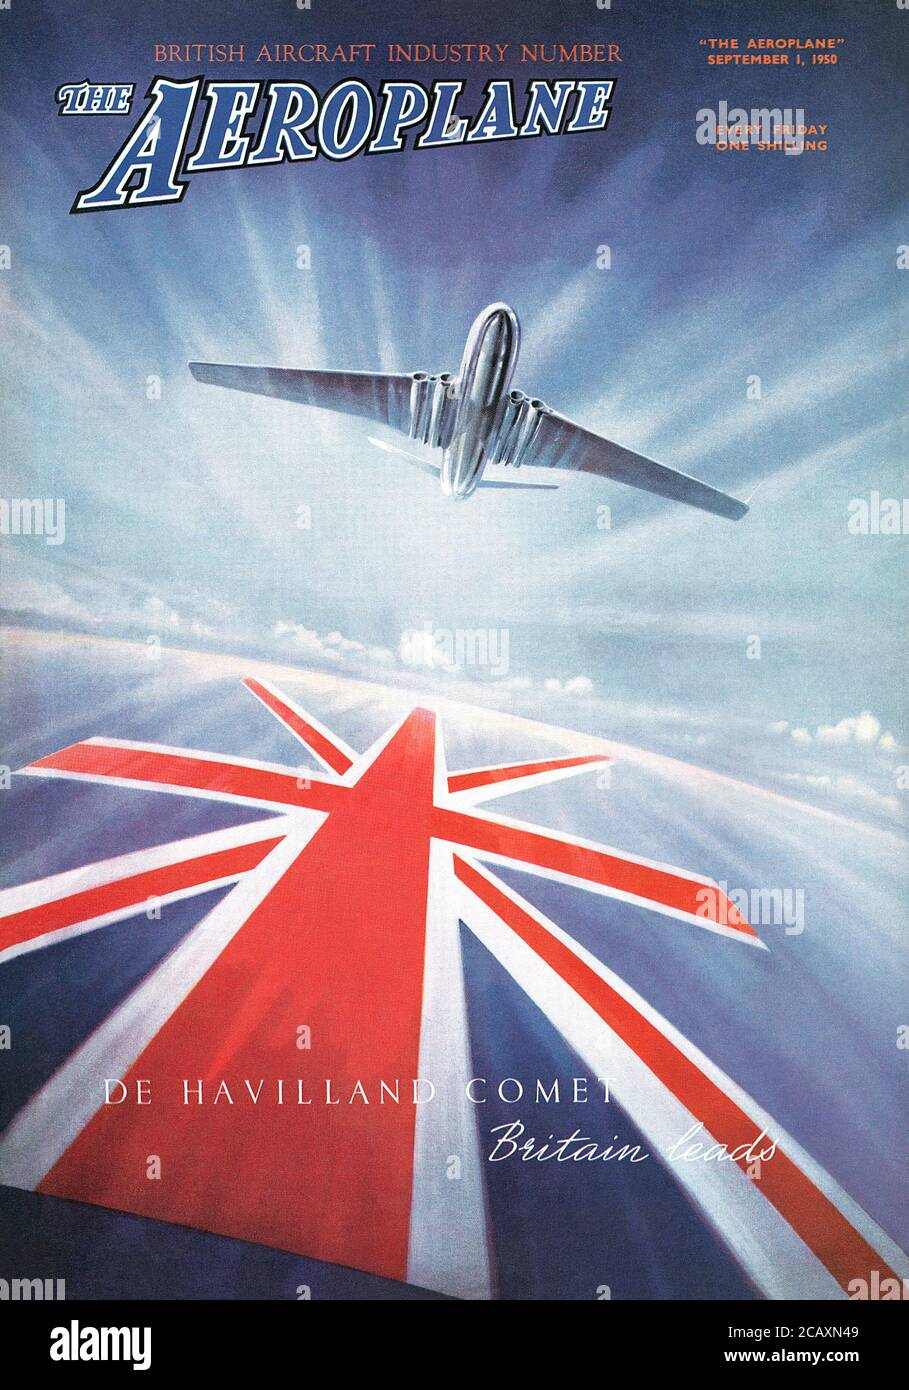 Vinatge front cover of The Aeroplane magazine, featuring an advertisement for the De Havilland Comet jet airliner. Stock Photo